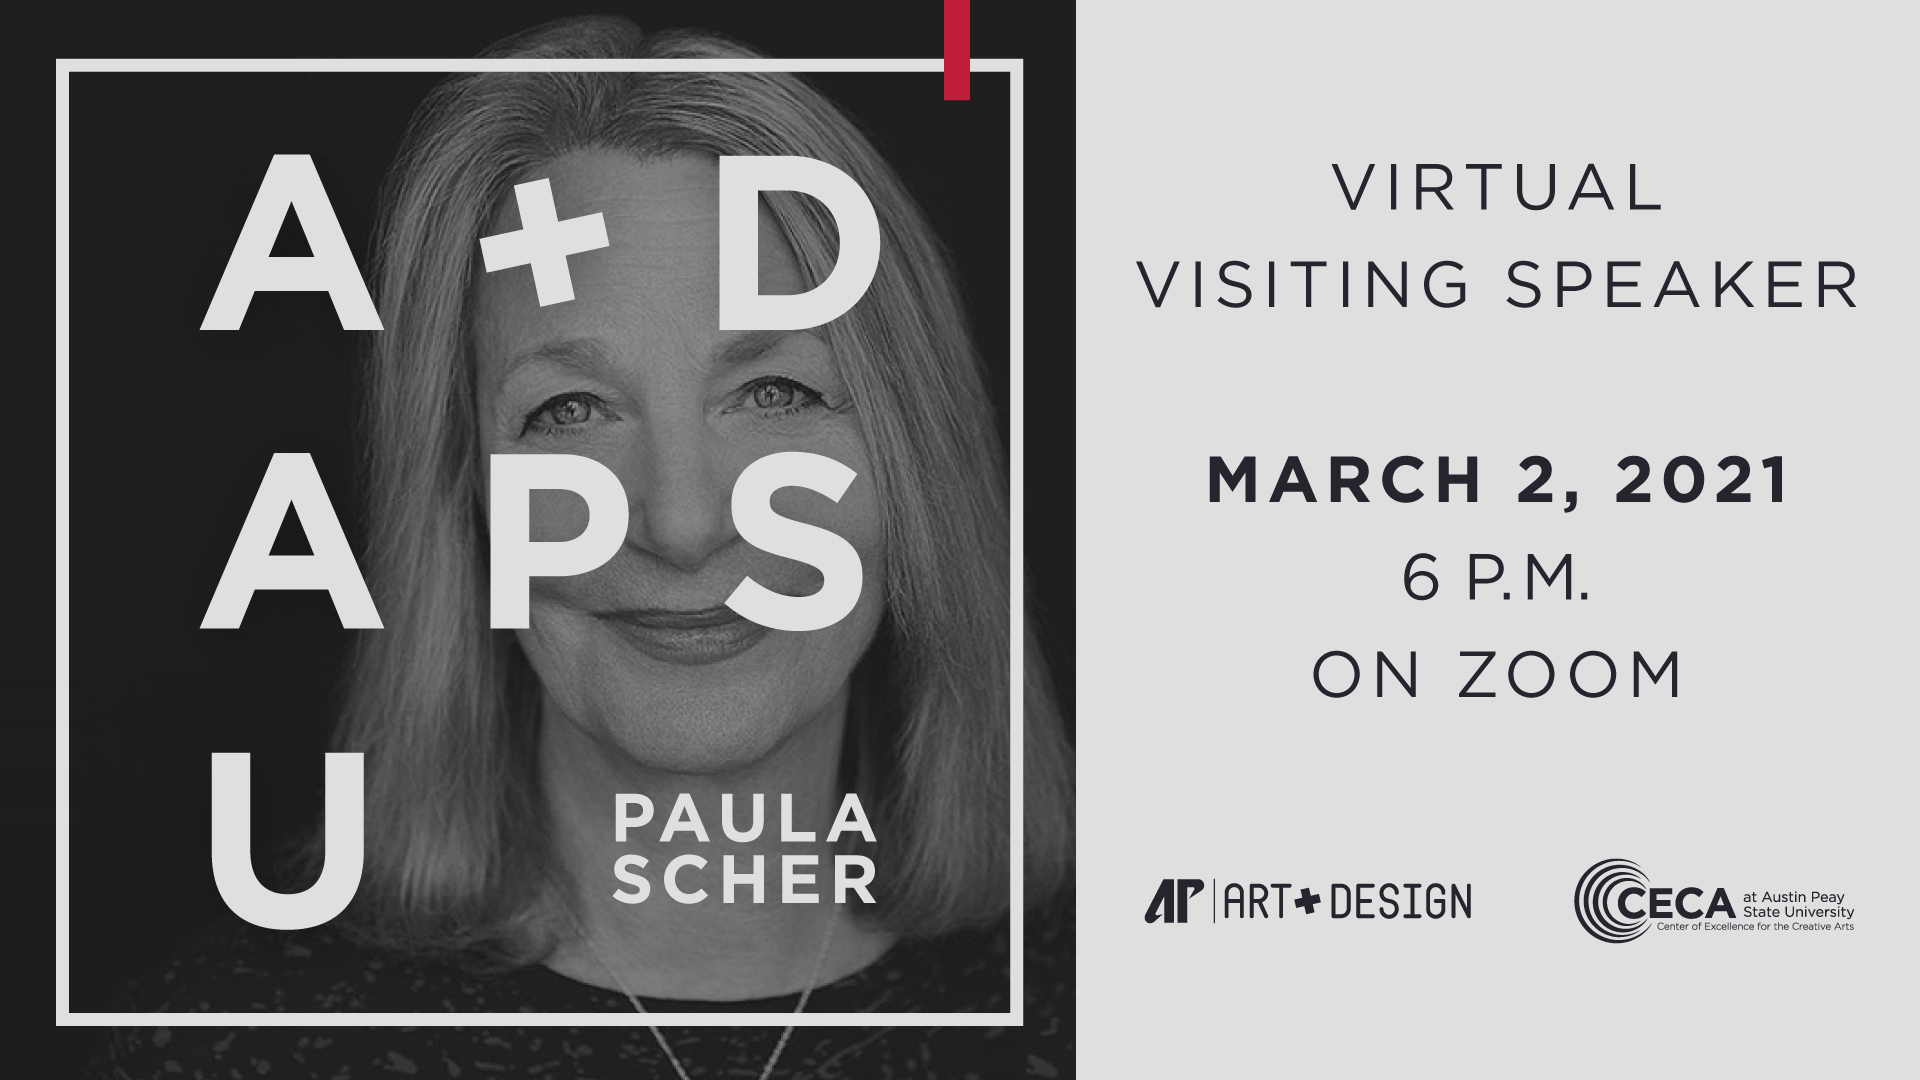 Happening today: World-renowned graphic designer Paula Scher to deliver free lecture